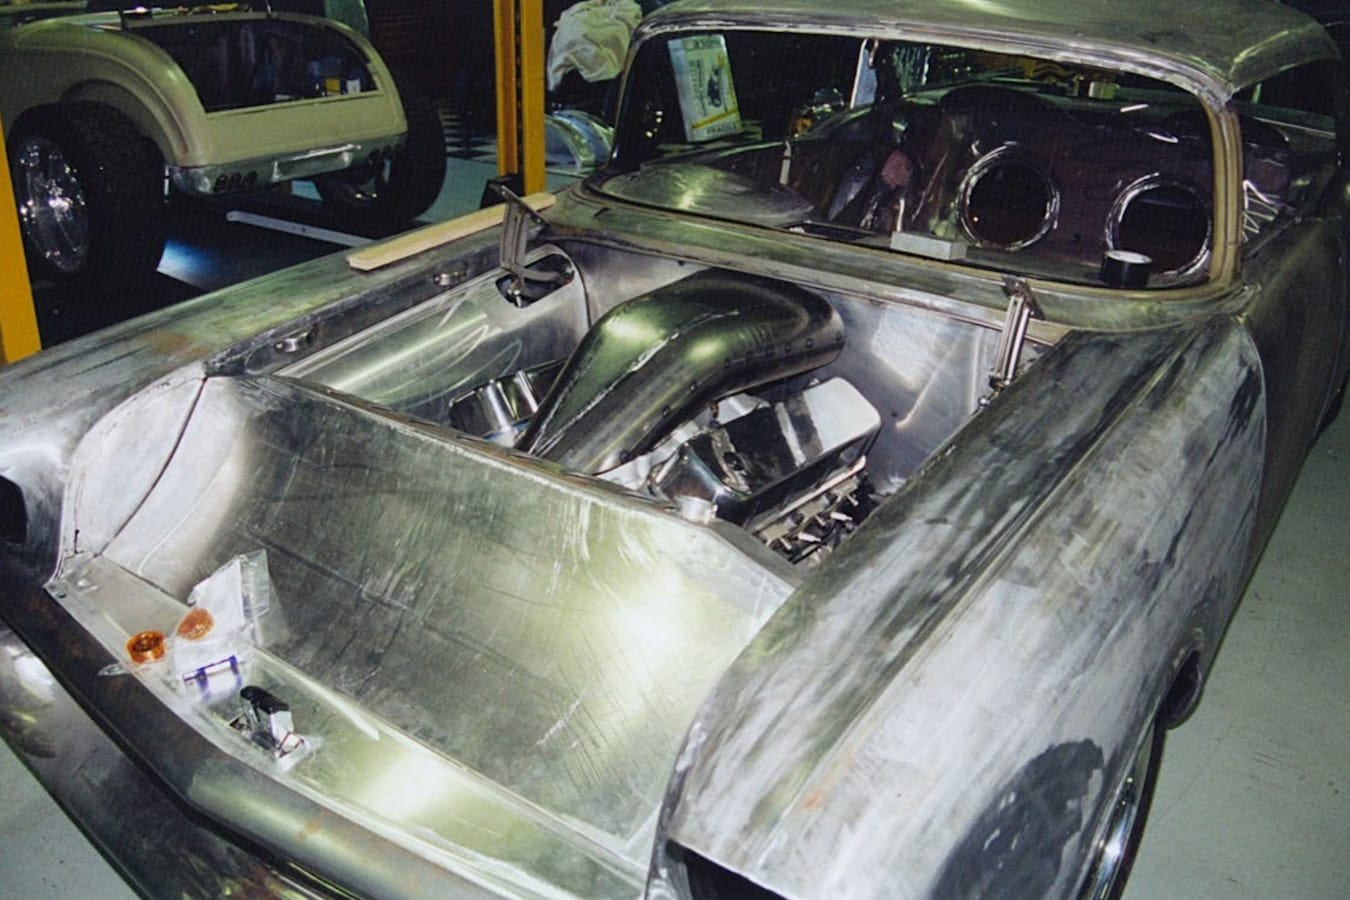 Chev Bel Air in the build